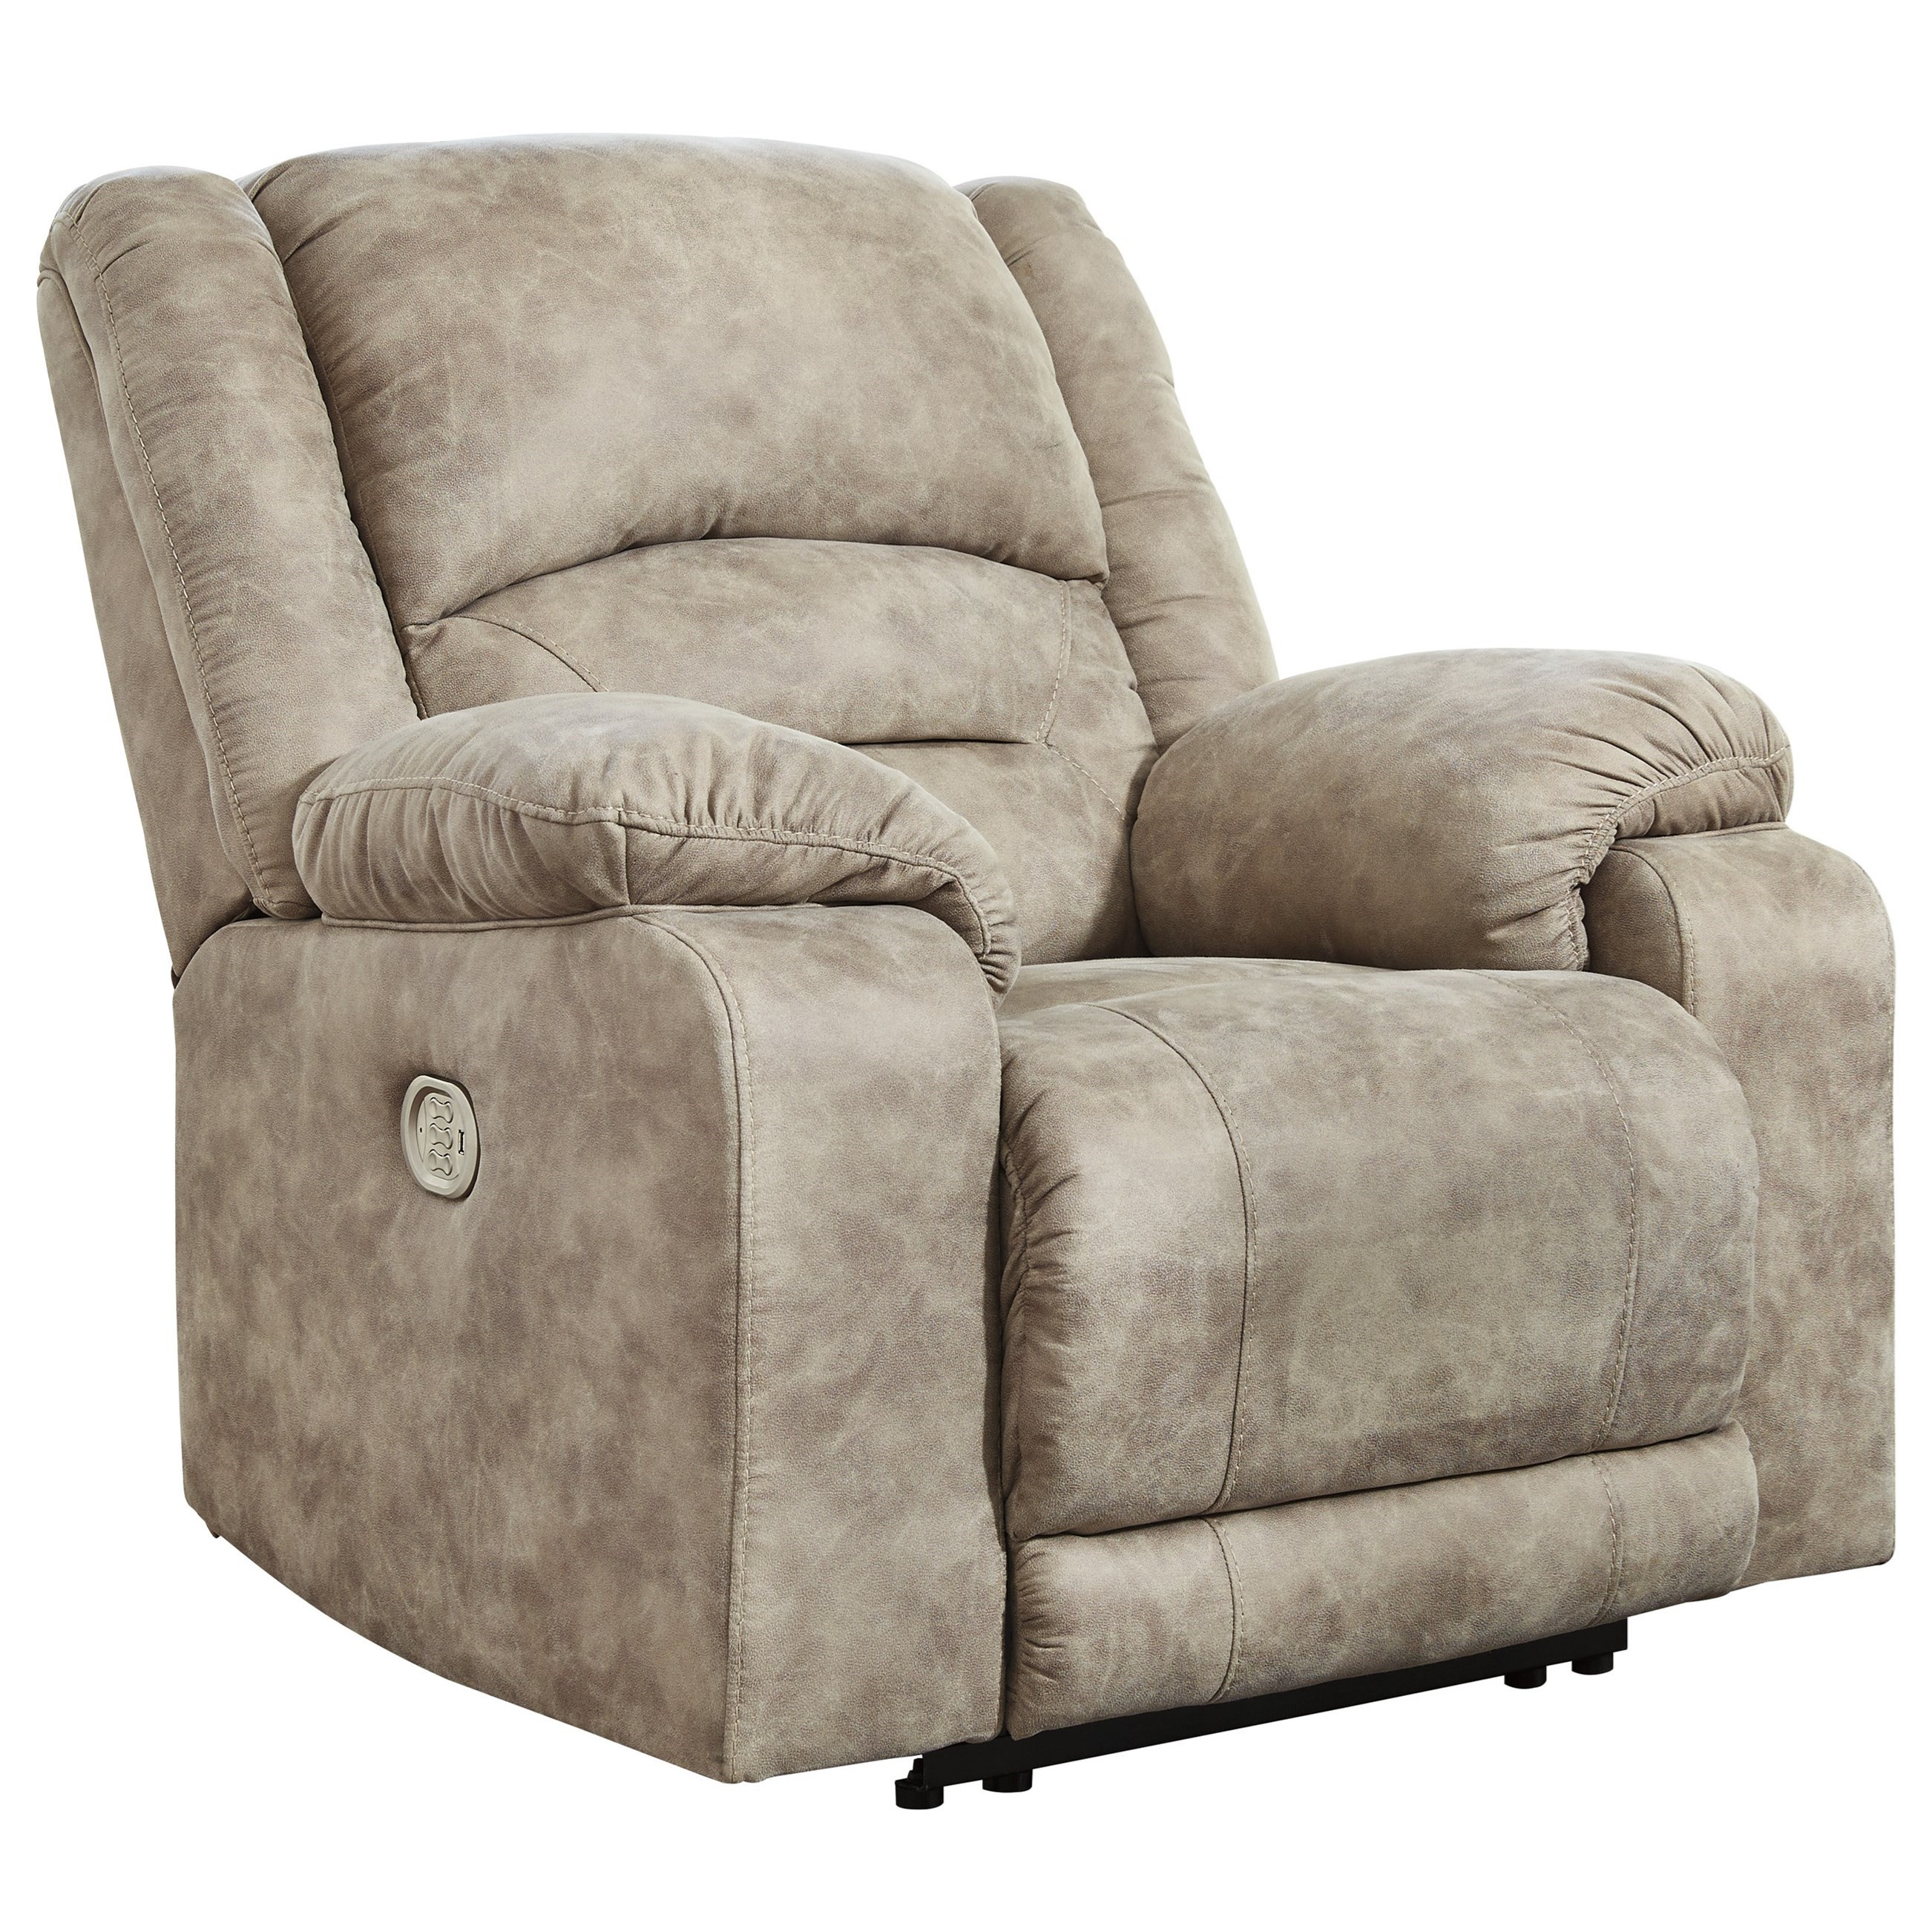 Benchcraft McGinty Power Recliner with Adjustable Headrest - Item Number: 5410113